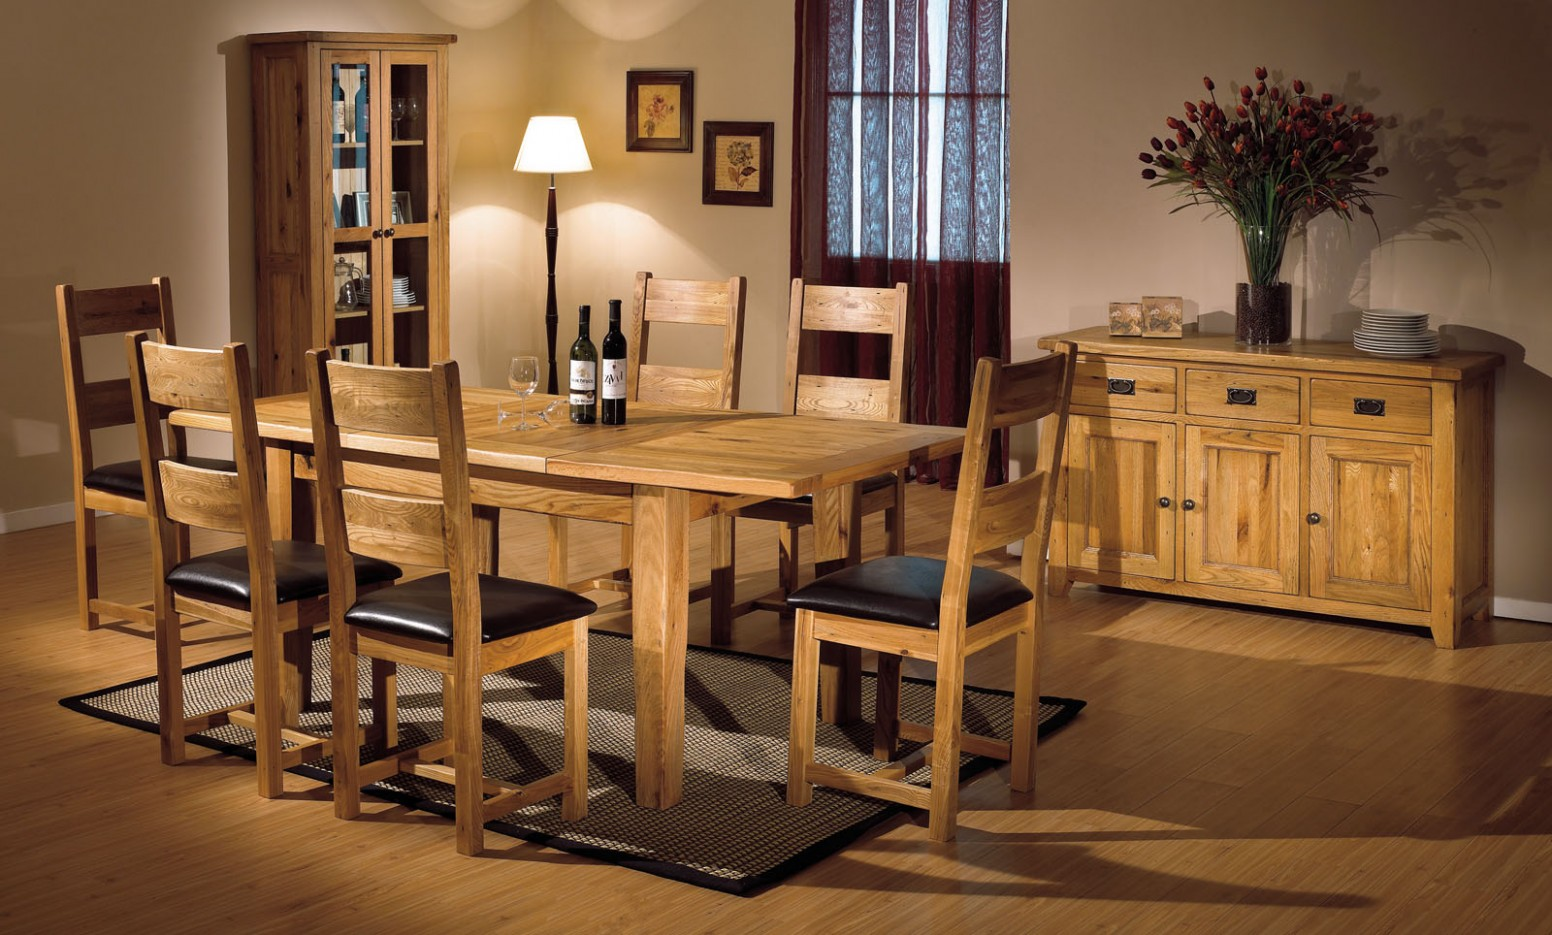 oak furniture for dining room  Dreamehome - Dining Room Ideas With Oak Furniture